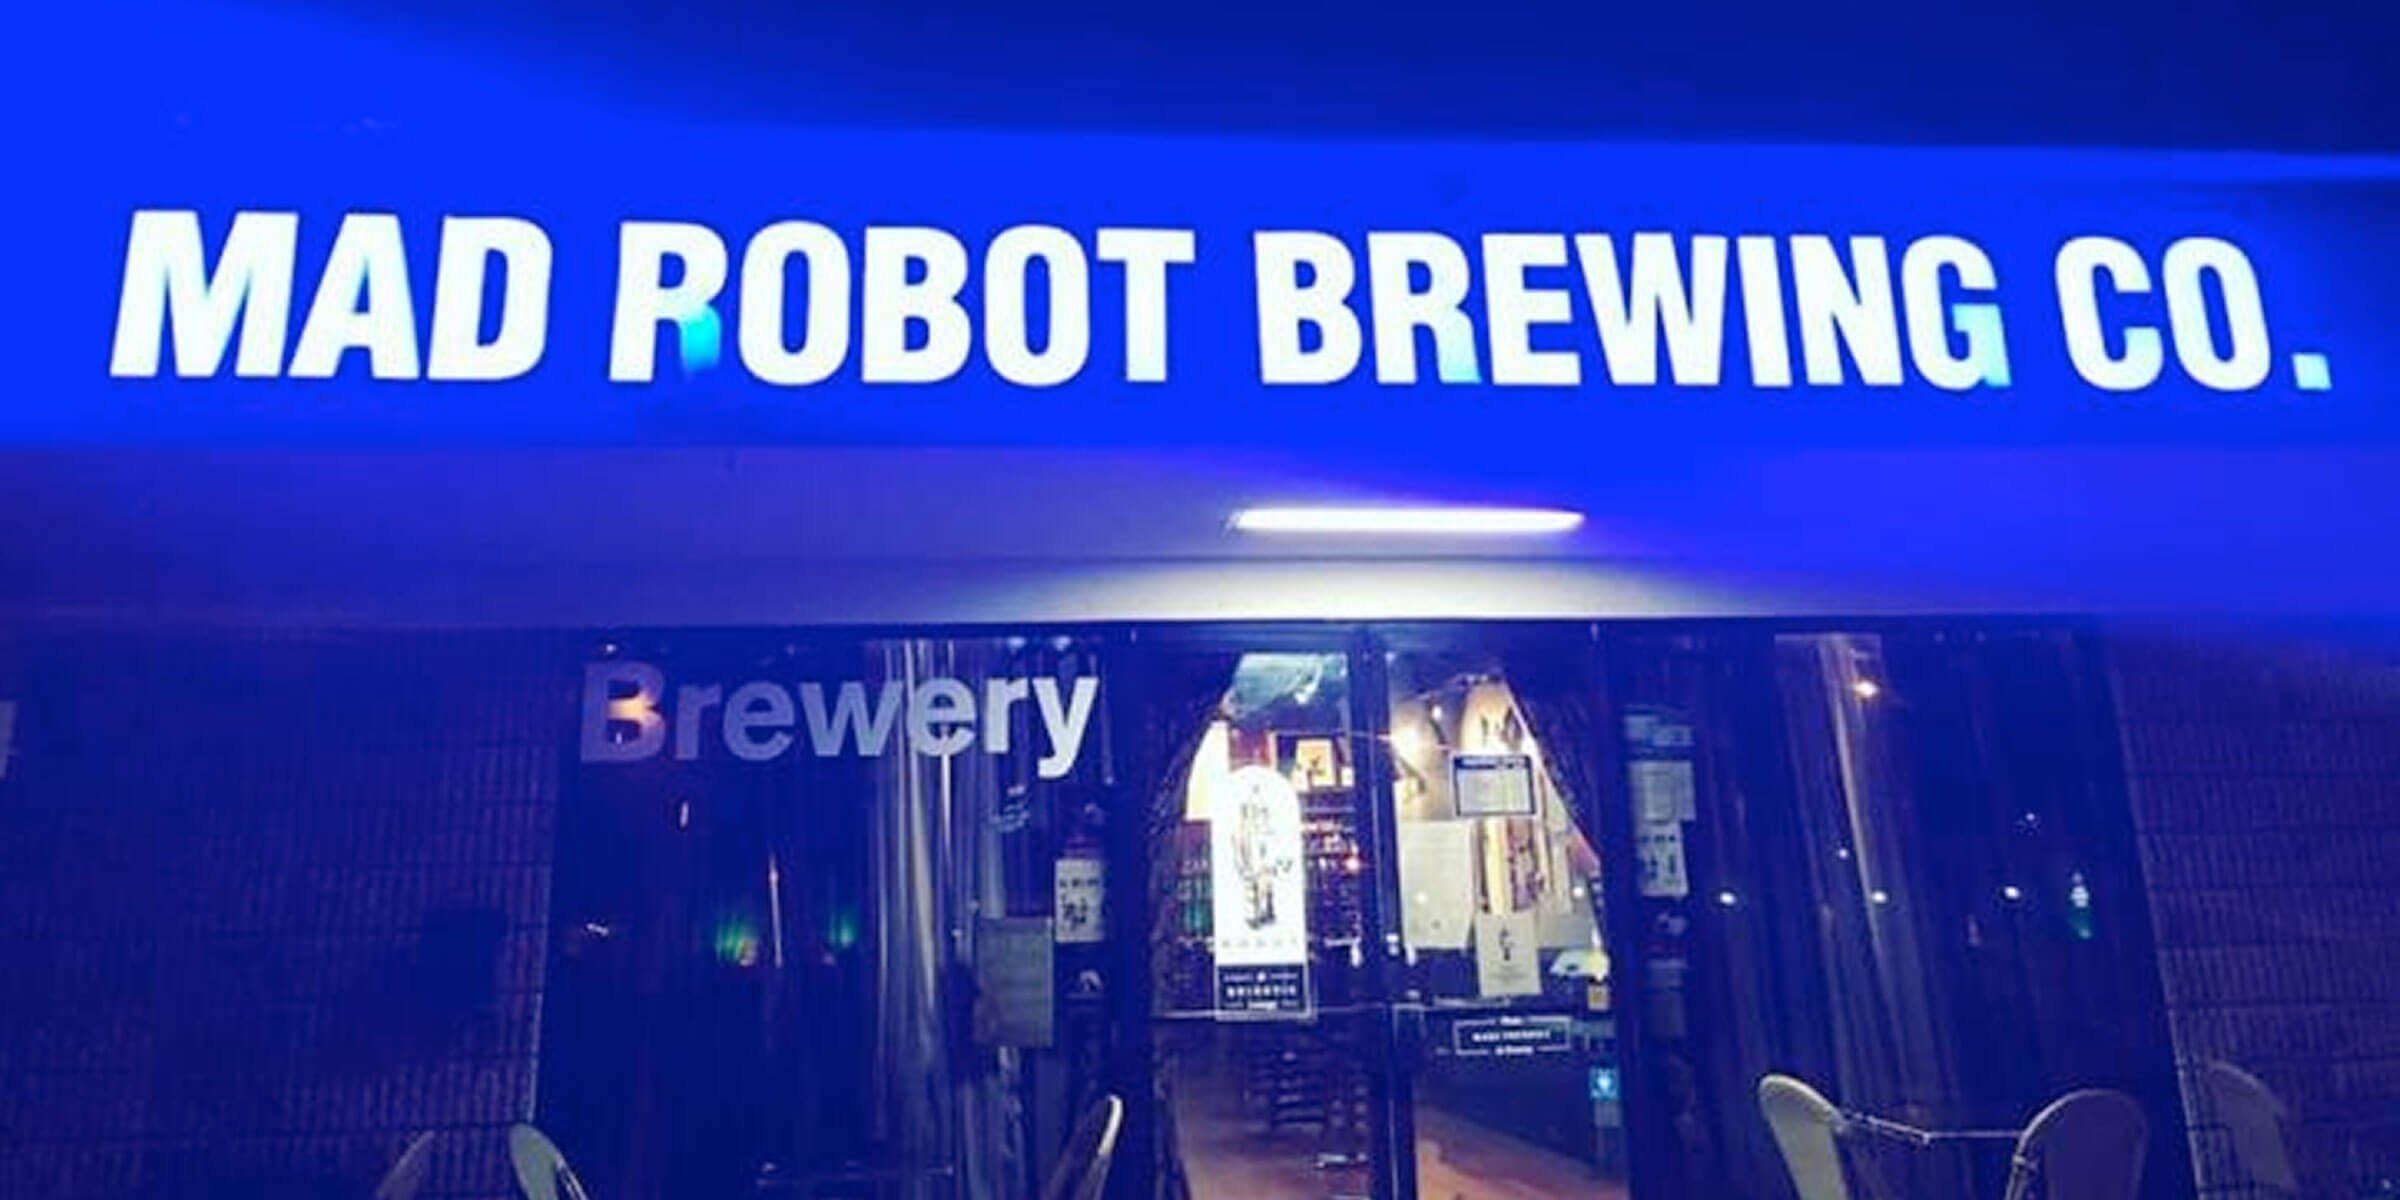 Outside the entrance to Mad Robot Brewing Co. in Boca Raton, Florida